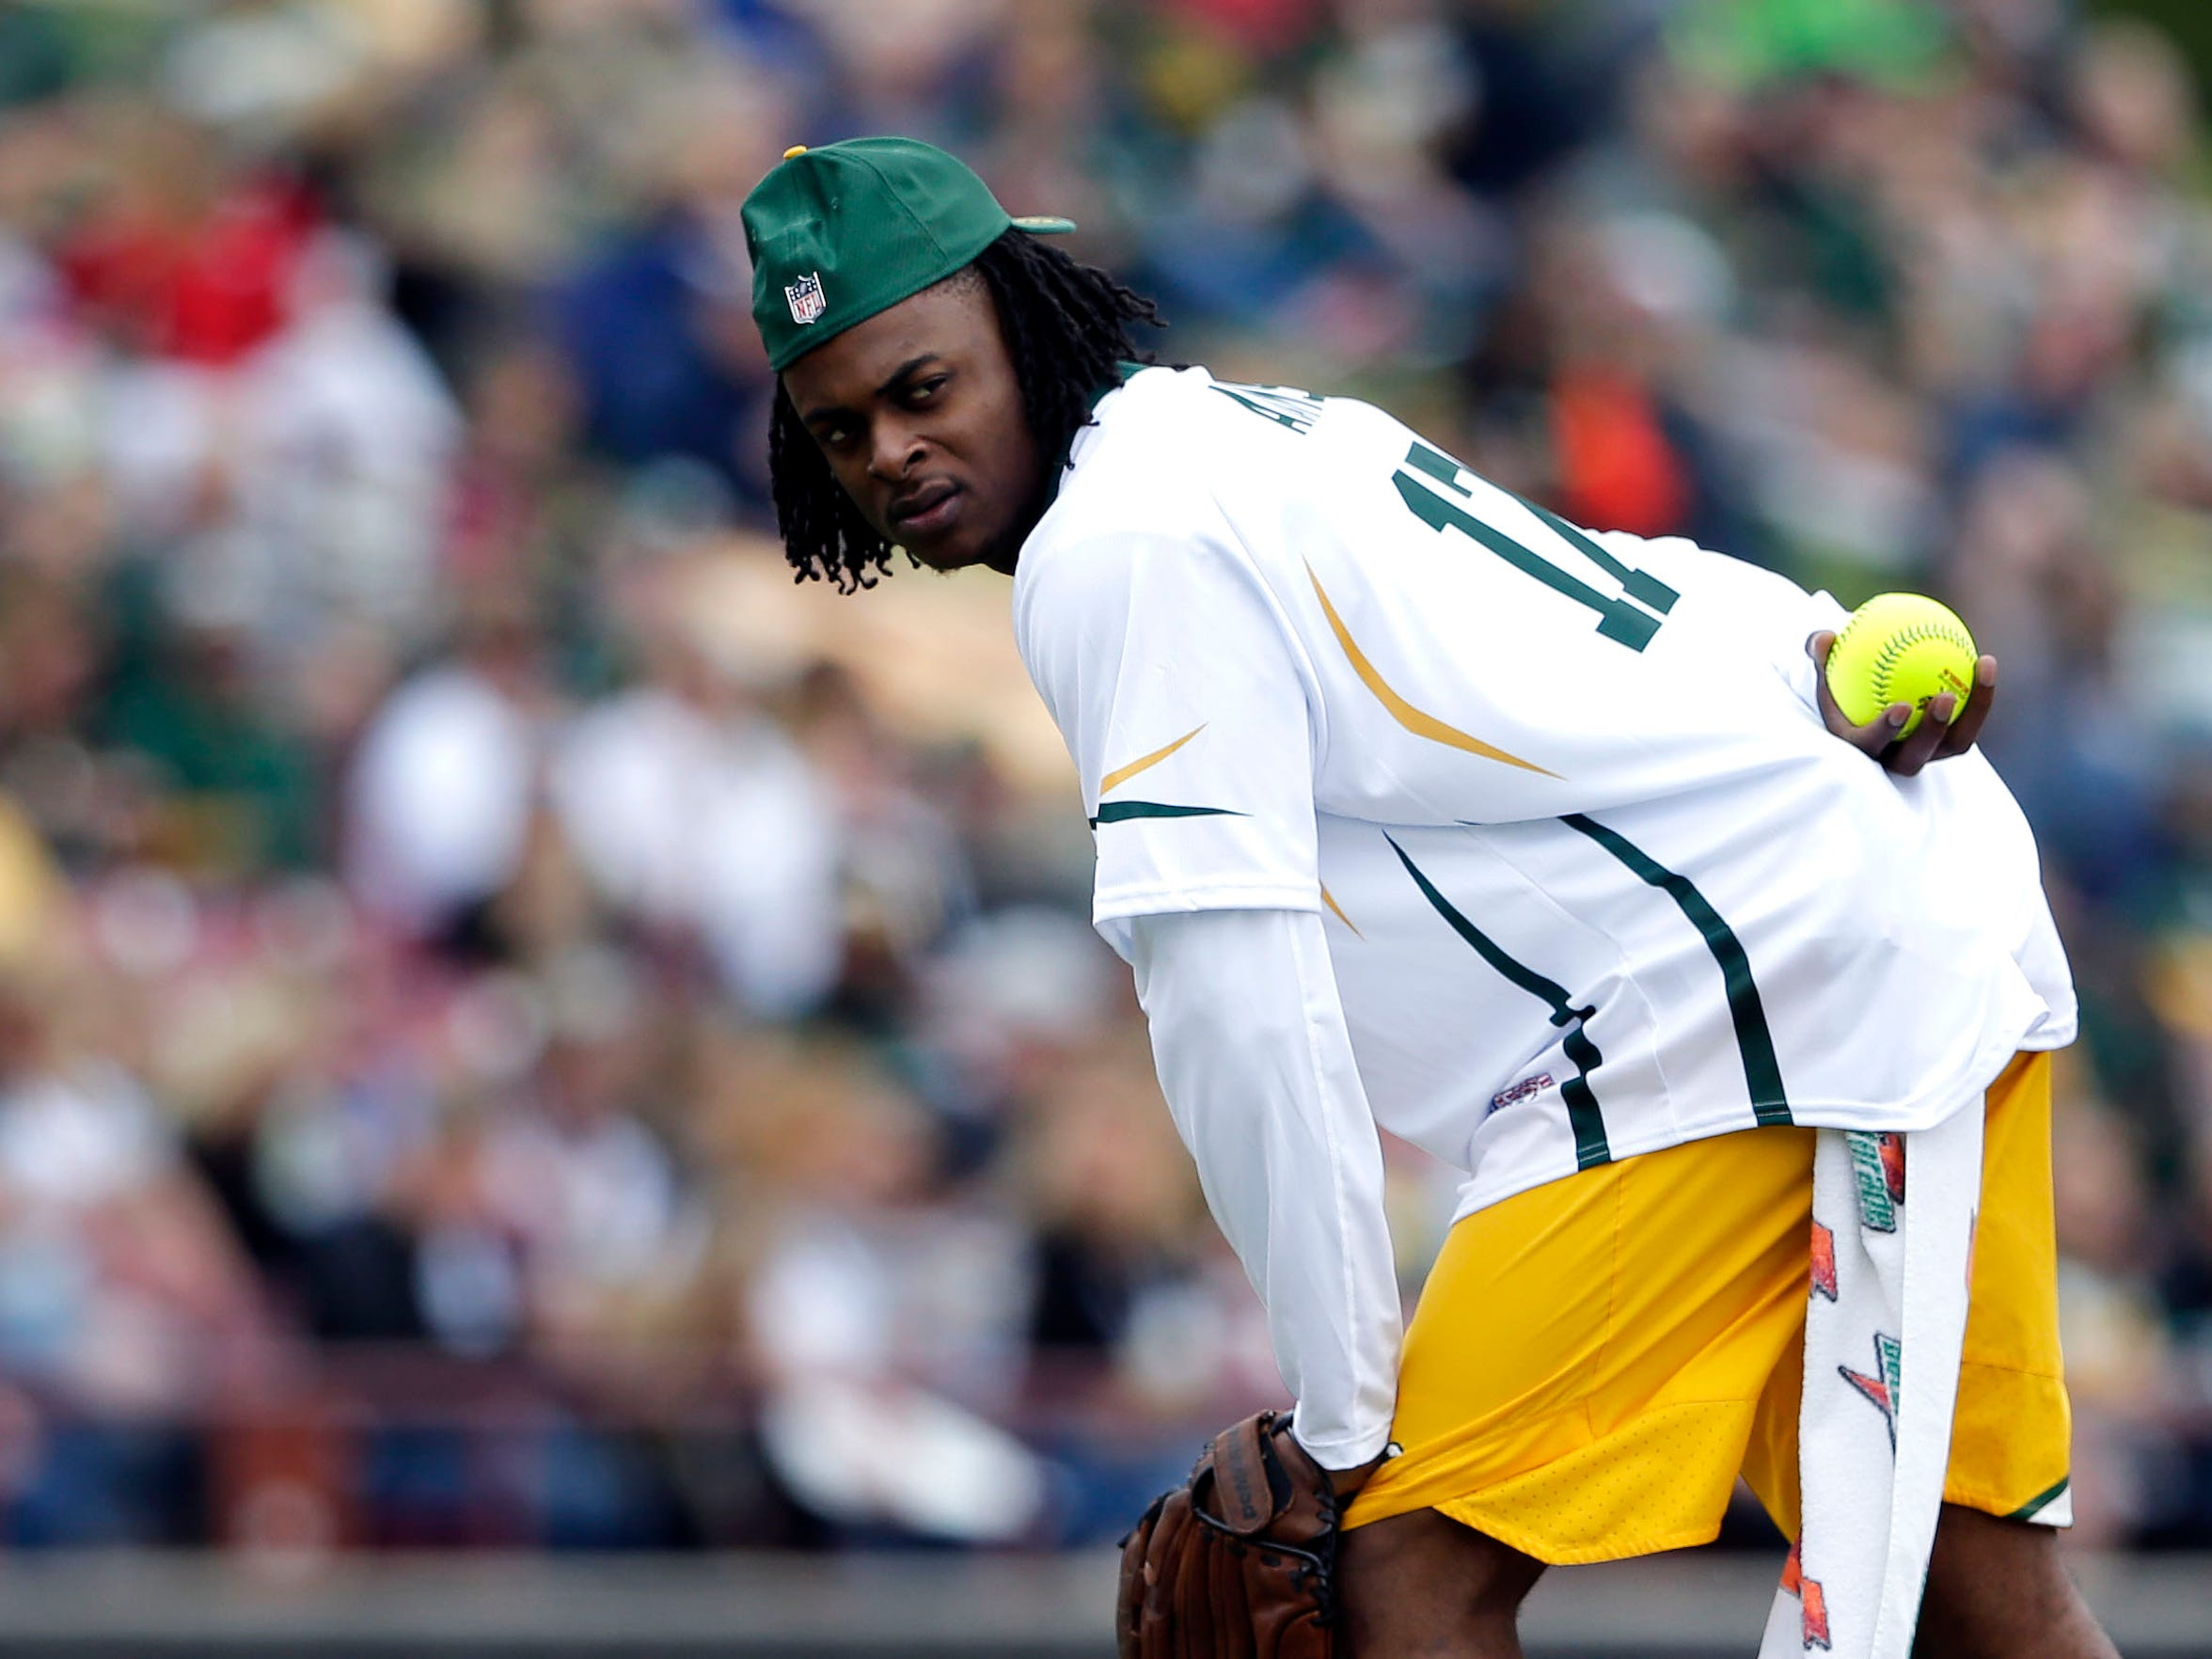 Davante Adams is again the co-host for the Green & Gold Charity Softball Game.